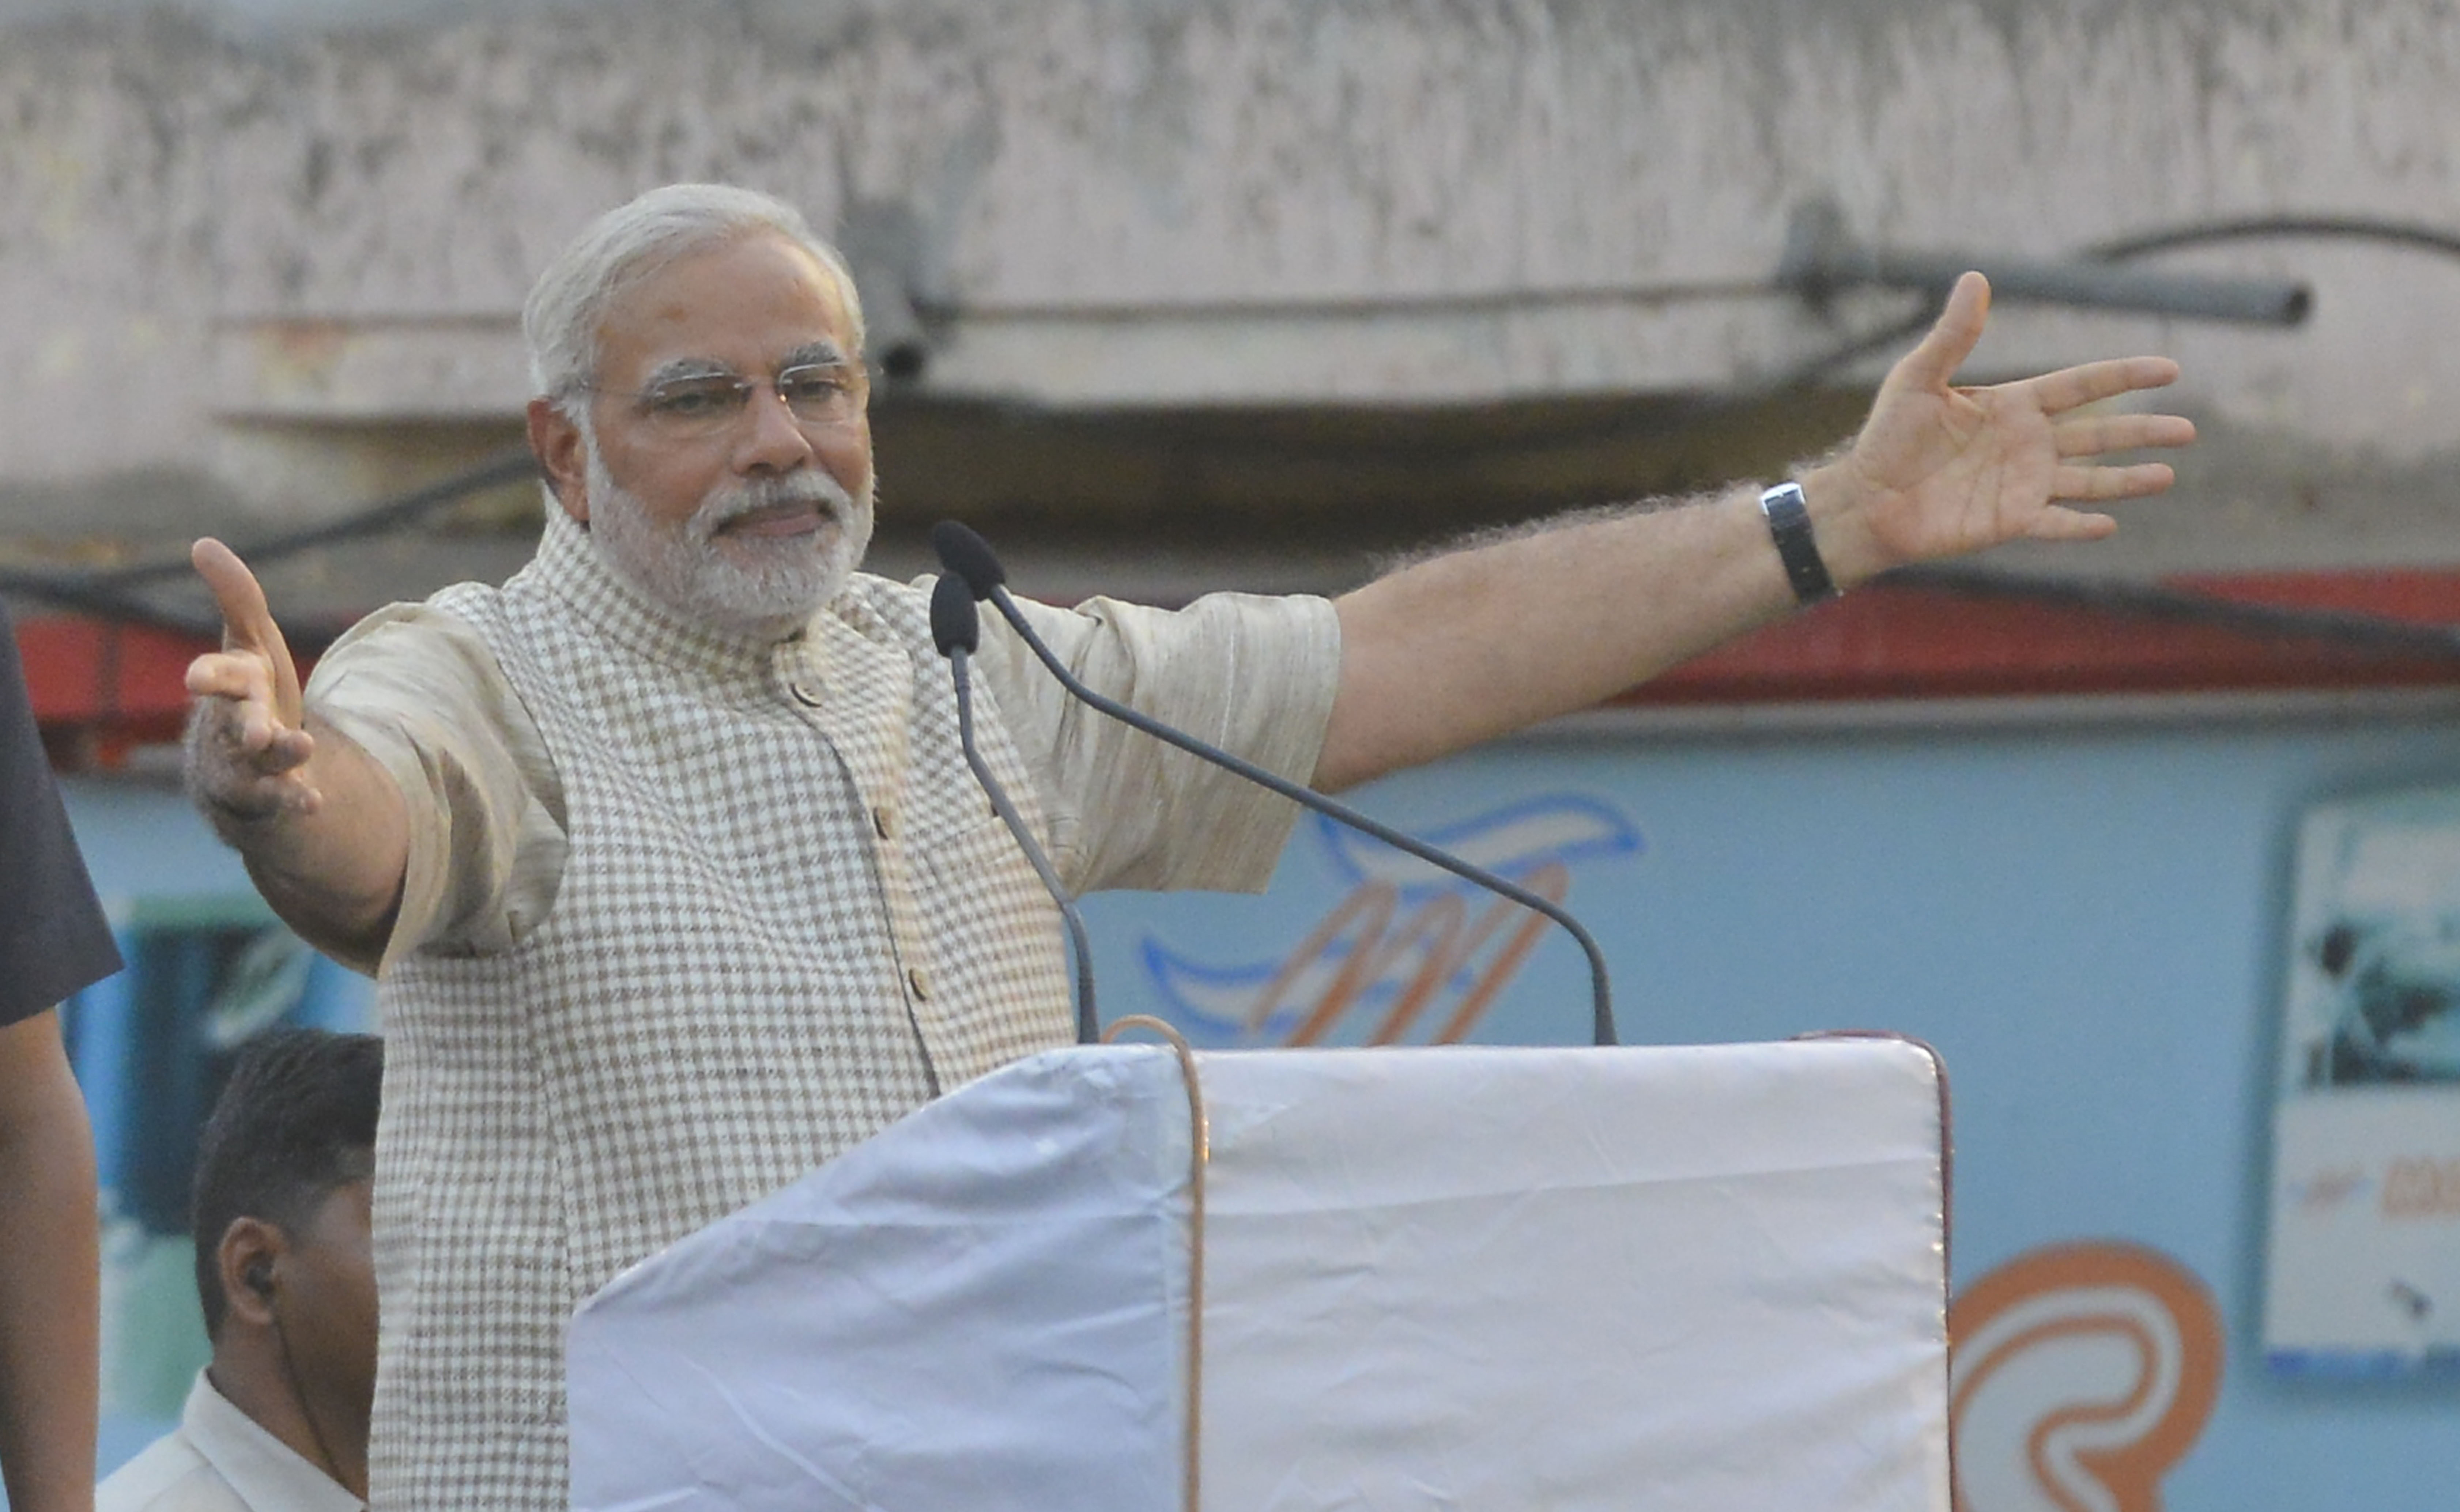 PM-designate Narendra Modi addressing a rally in Vadodara, Gujarat, after the BJP won the Lok Sabha elections on Friday, May 16, 2014.